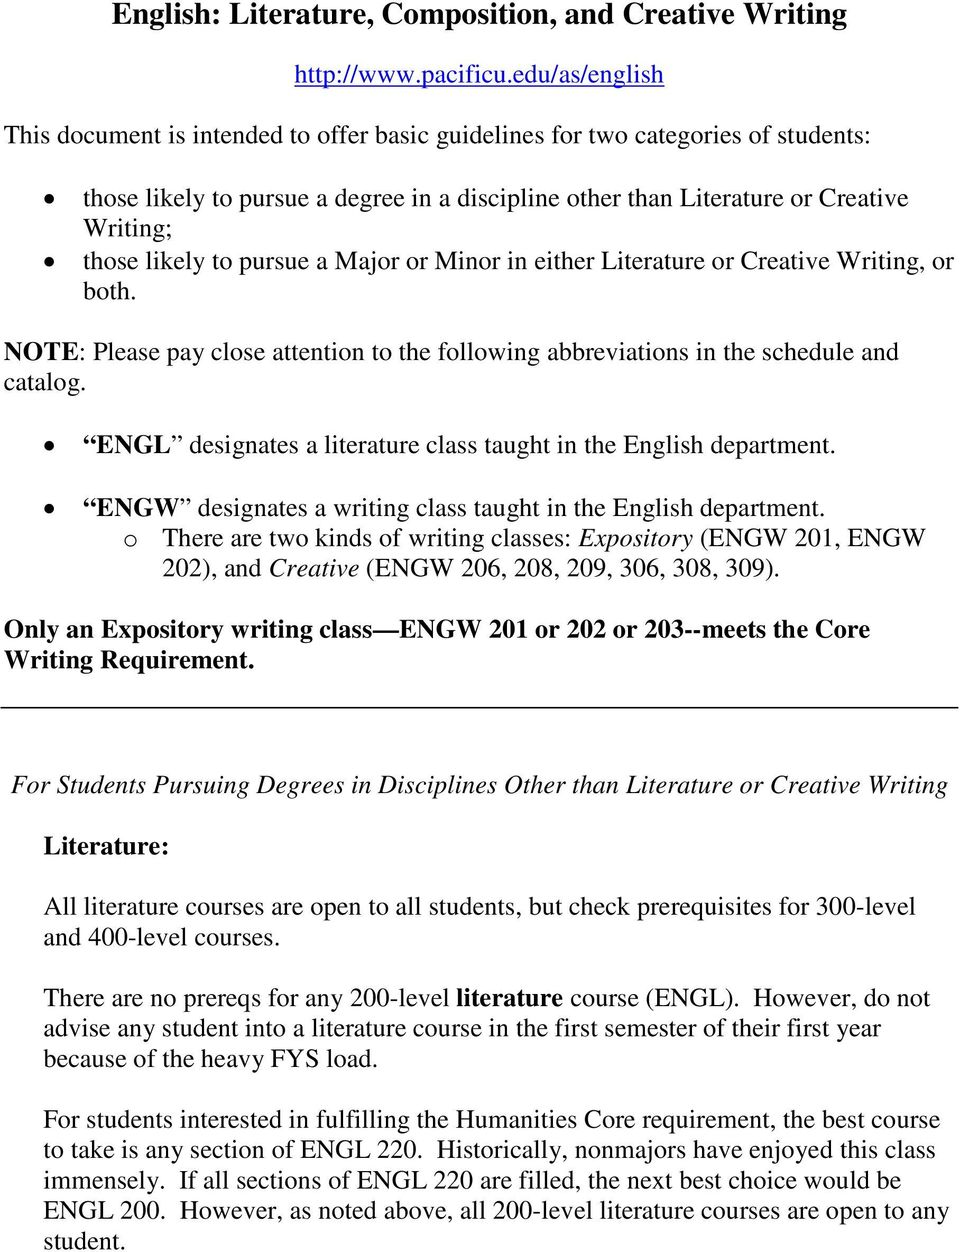 likely to pursue a Major or Minor in either Literature or Creative Writing, or both. NOTE: Please pay close attention to the following abbreviations in the schedule and catalog.